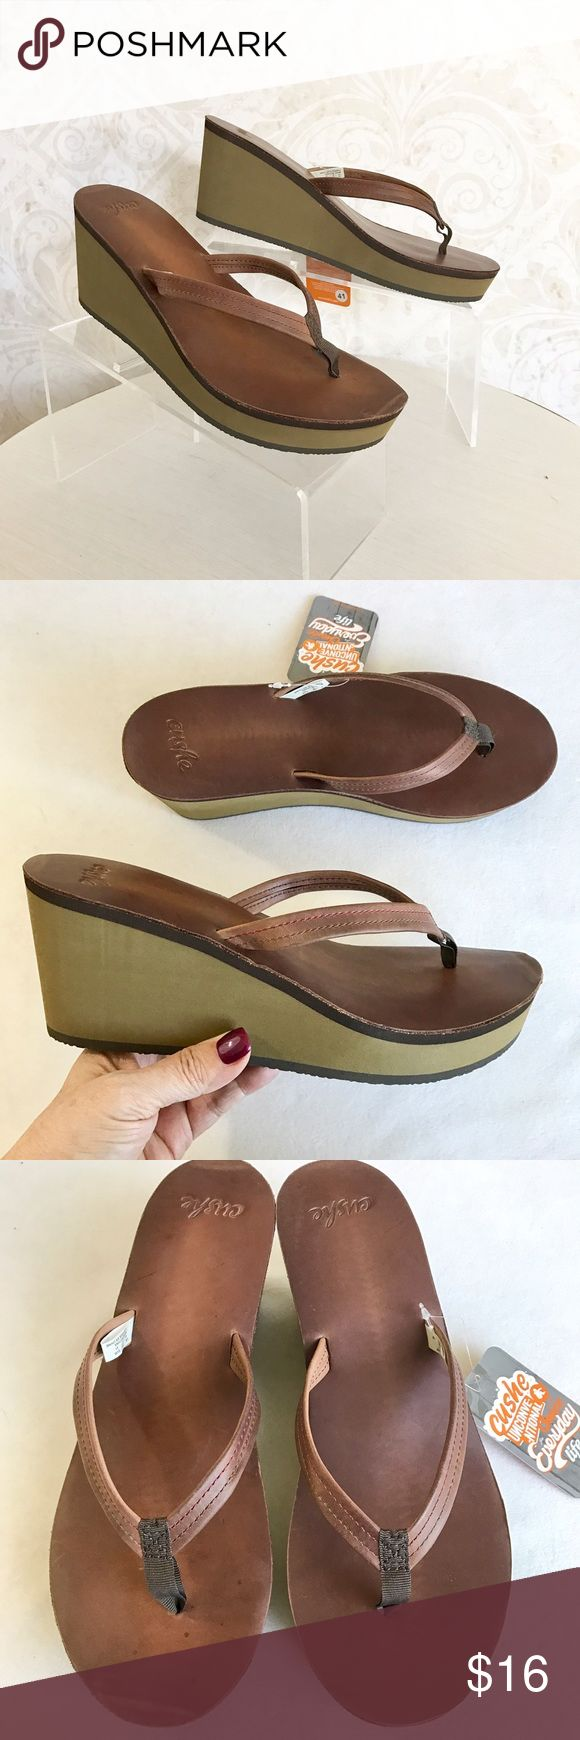 "Cushe brown leather wedge heel flip flop sz 10 A flip flop with some oomph! Thong sandal with brown leather upper. Anatomical ""last shape"" molded EVA compound wedge and platform for comfort and support. Brown leather footbed. Durable synthetic outsole. NWT; never worn. Cushe Shoes Sandals"